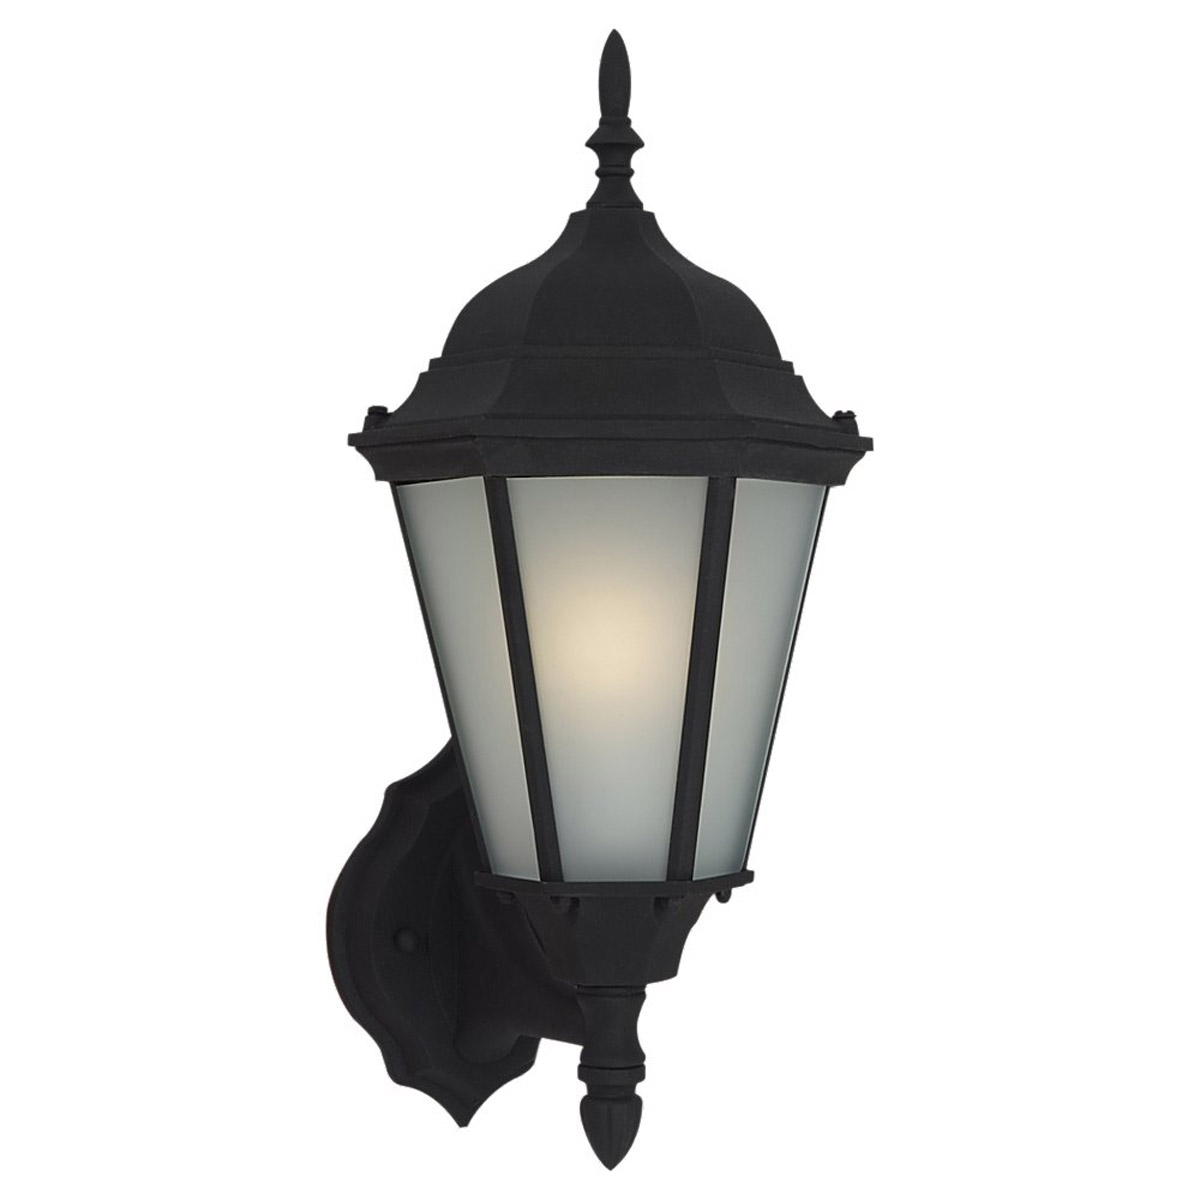 Sea Gull Lighting Windgate 1 Light Outdoor Wall Lantern in Black 88941BL-12